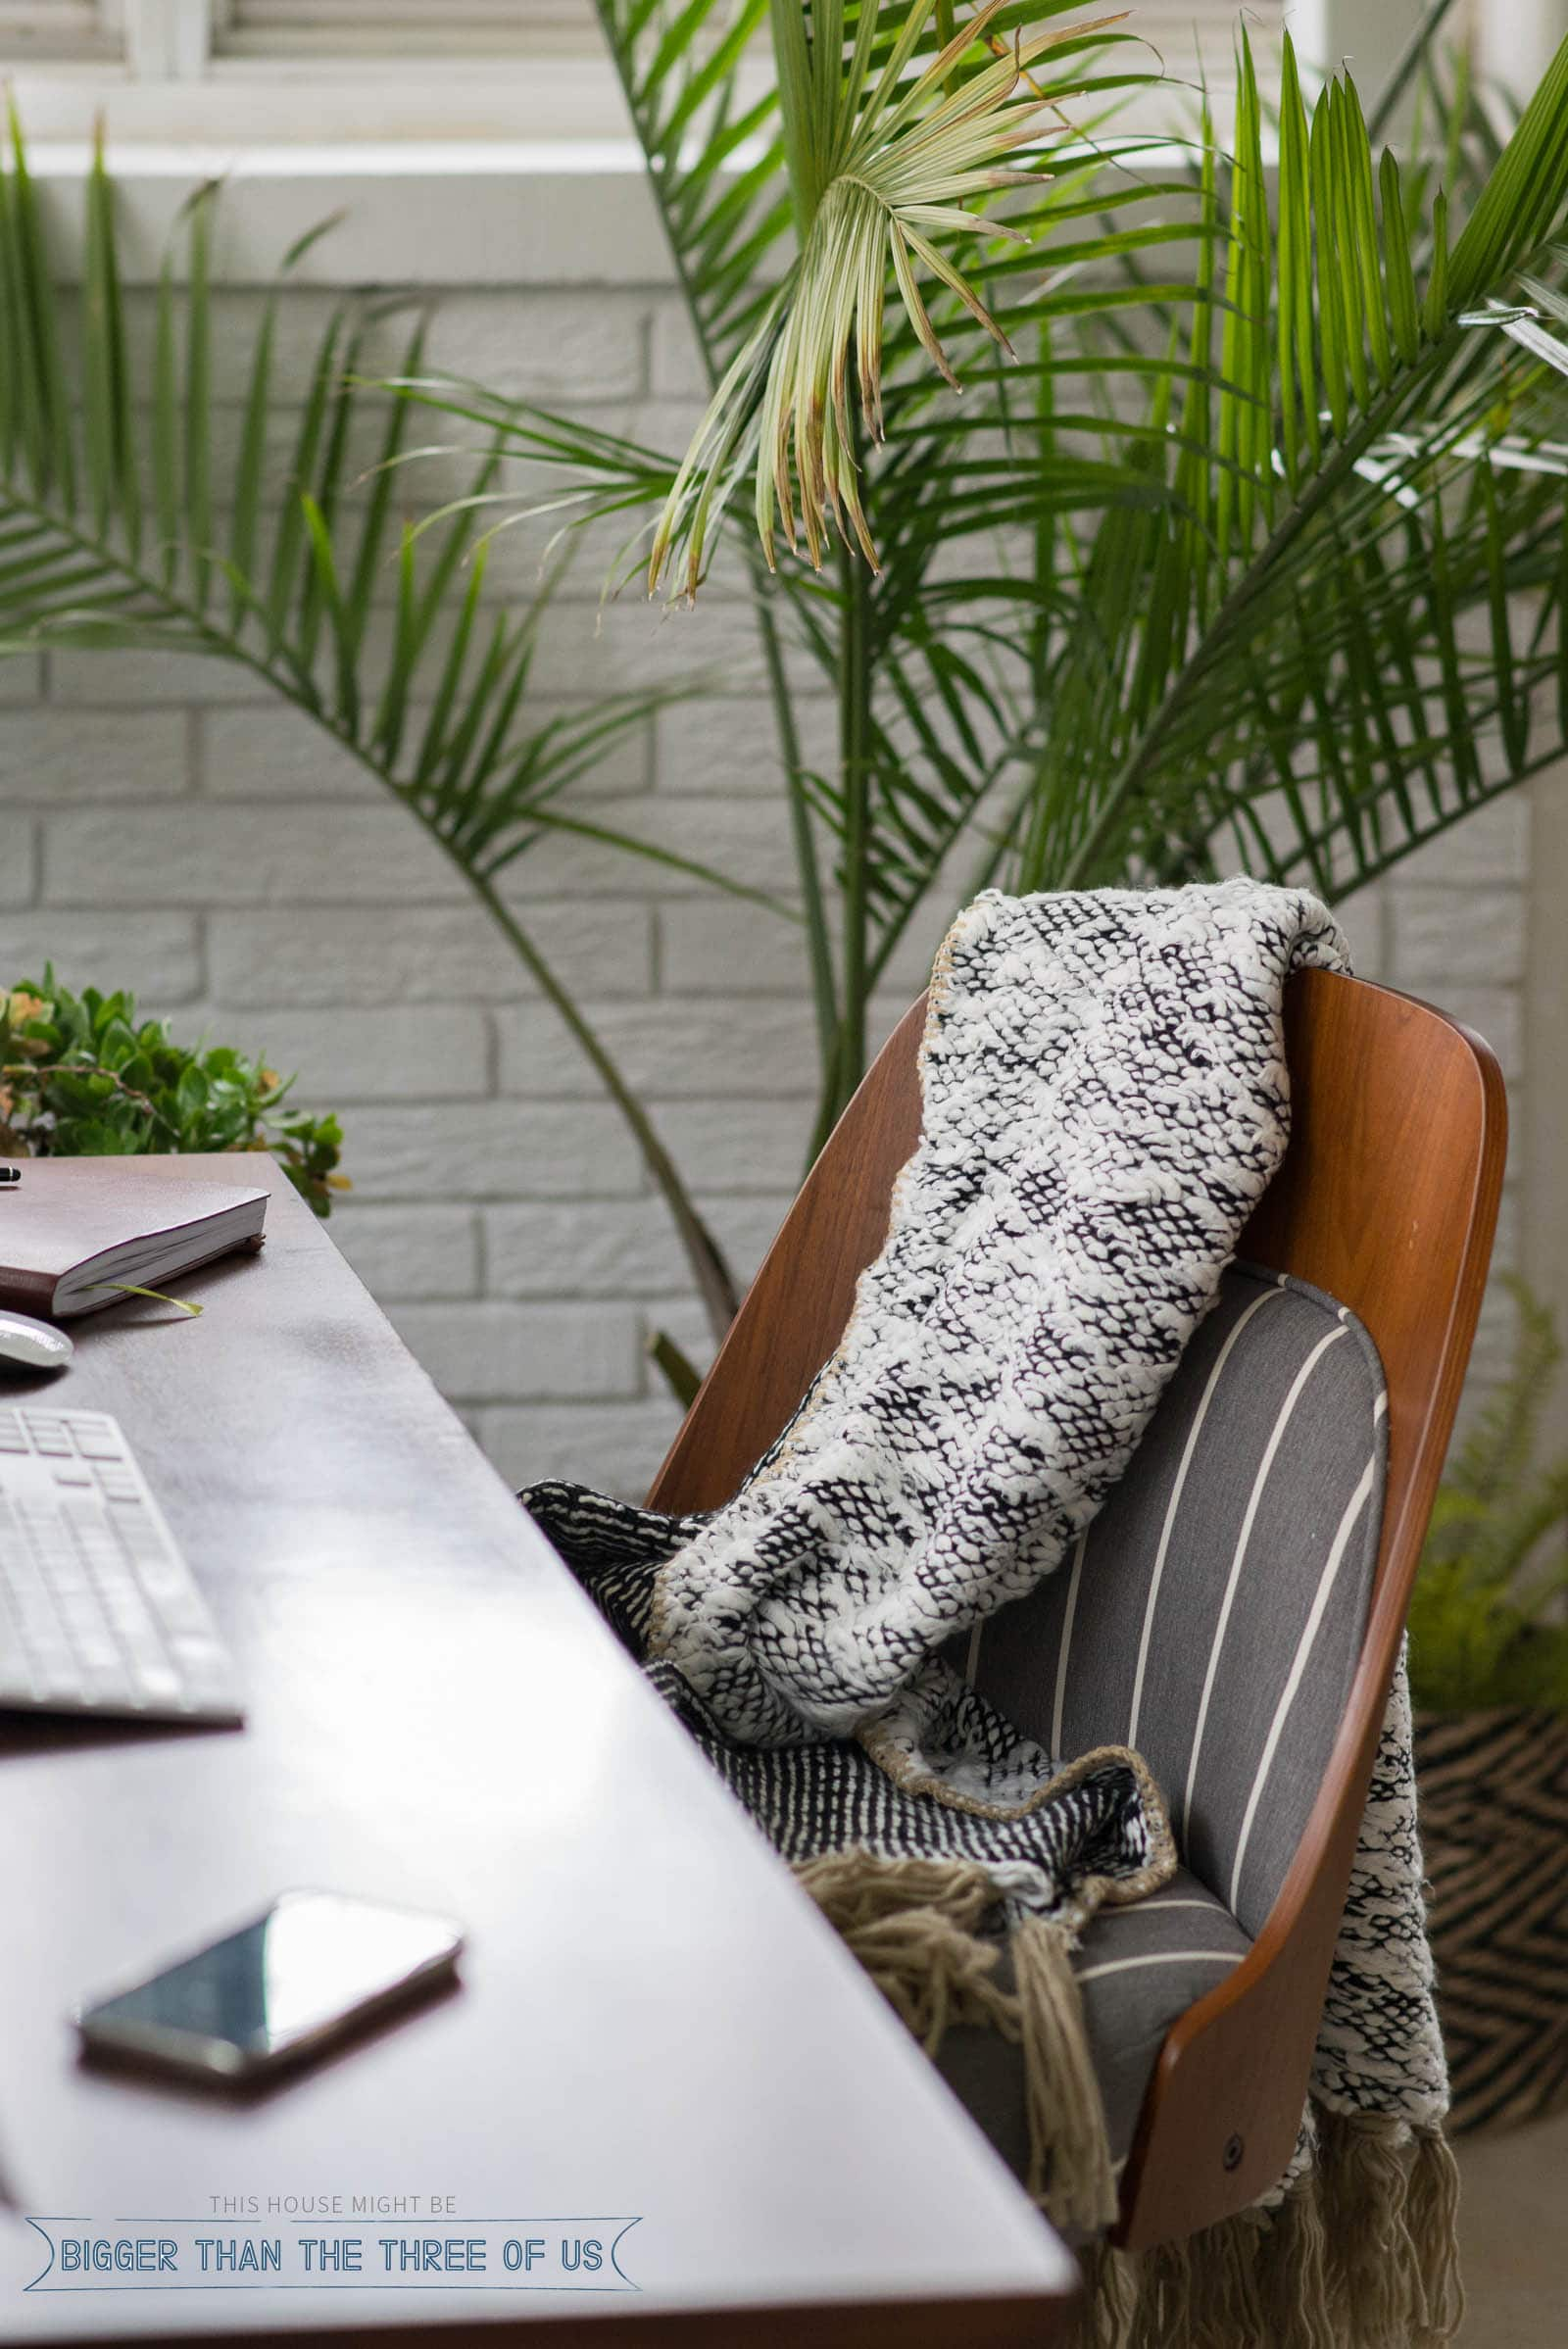 A cozy chunky blanket on office chair with plants in the background.